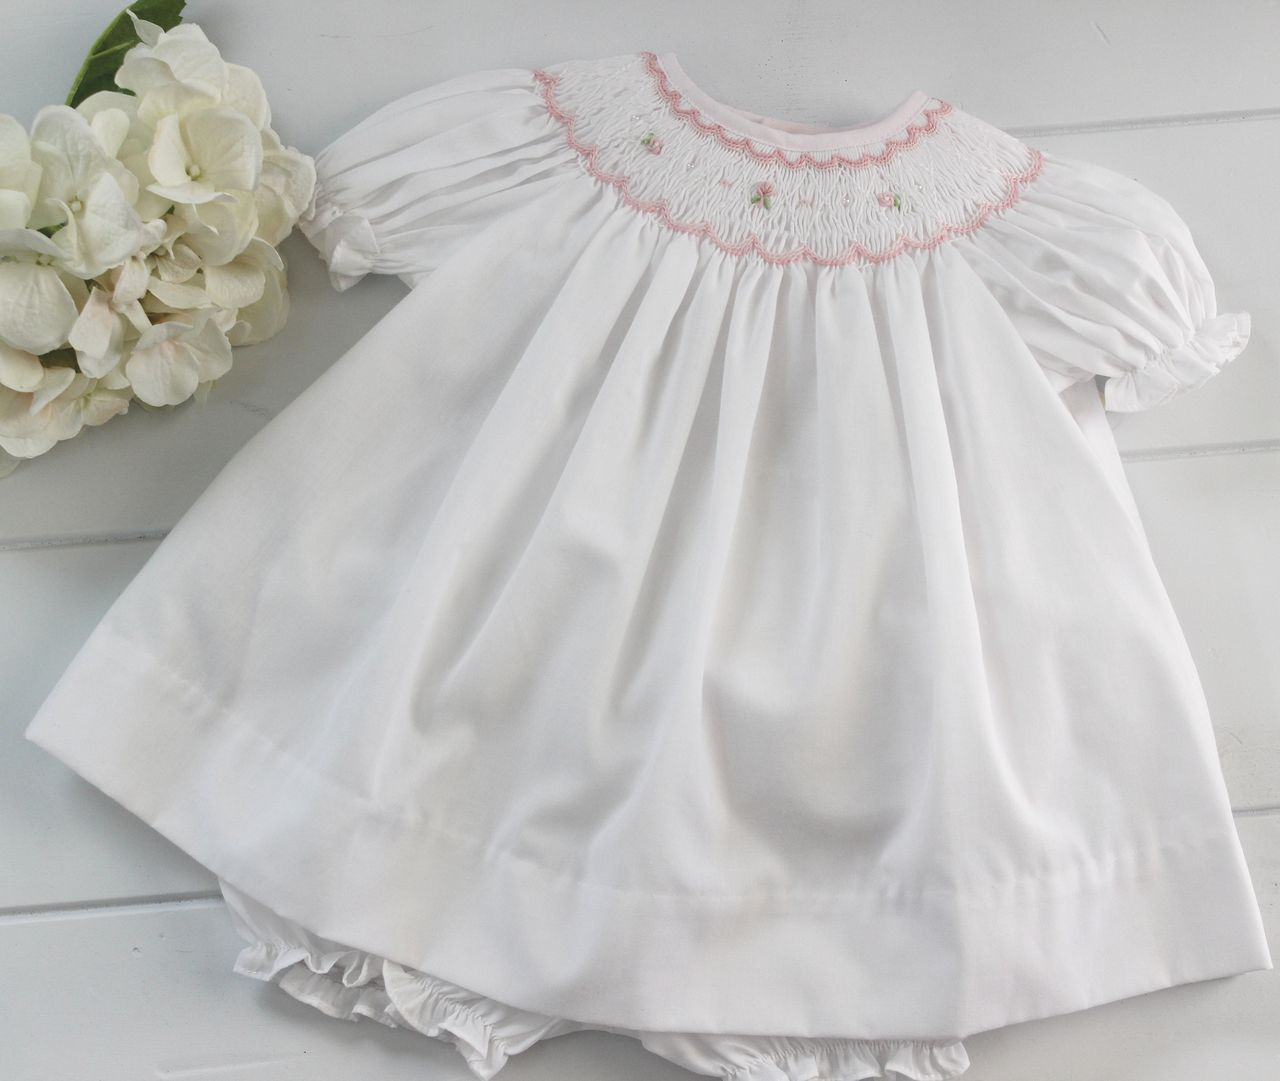 6057c630933e Hiccups Childrens Boutique - Petit Ami Girls White Smocked Bishop Dress  with Pink Smocking